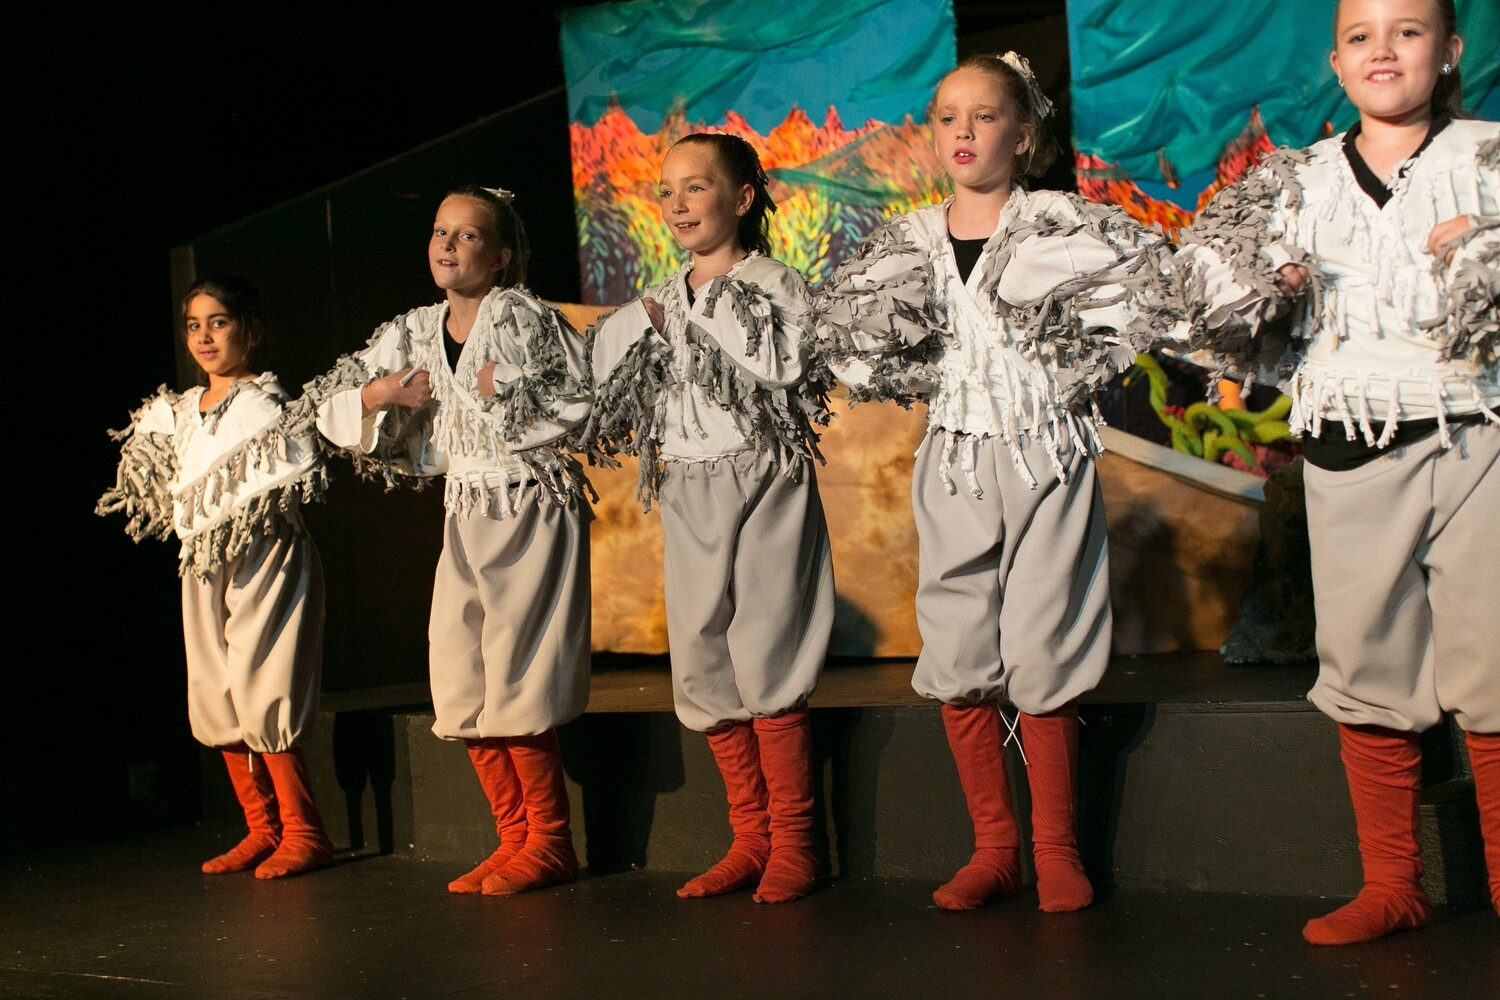 526---FULL-CURRENT STUDENT PAYMENTS ONLY--Seedlings Musical Theatre (Ages 6-8) Wednesdays 4:00-5:30pm